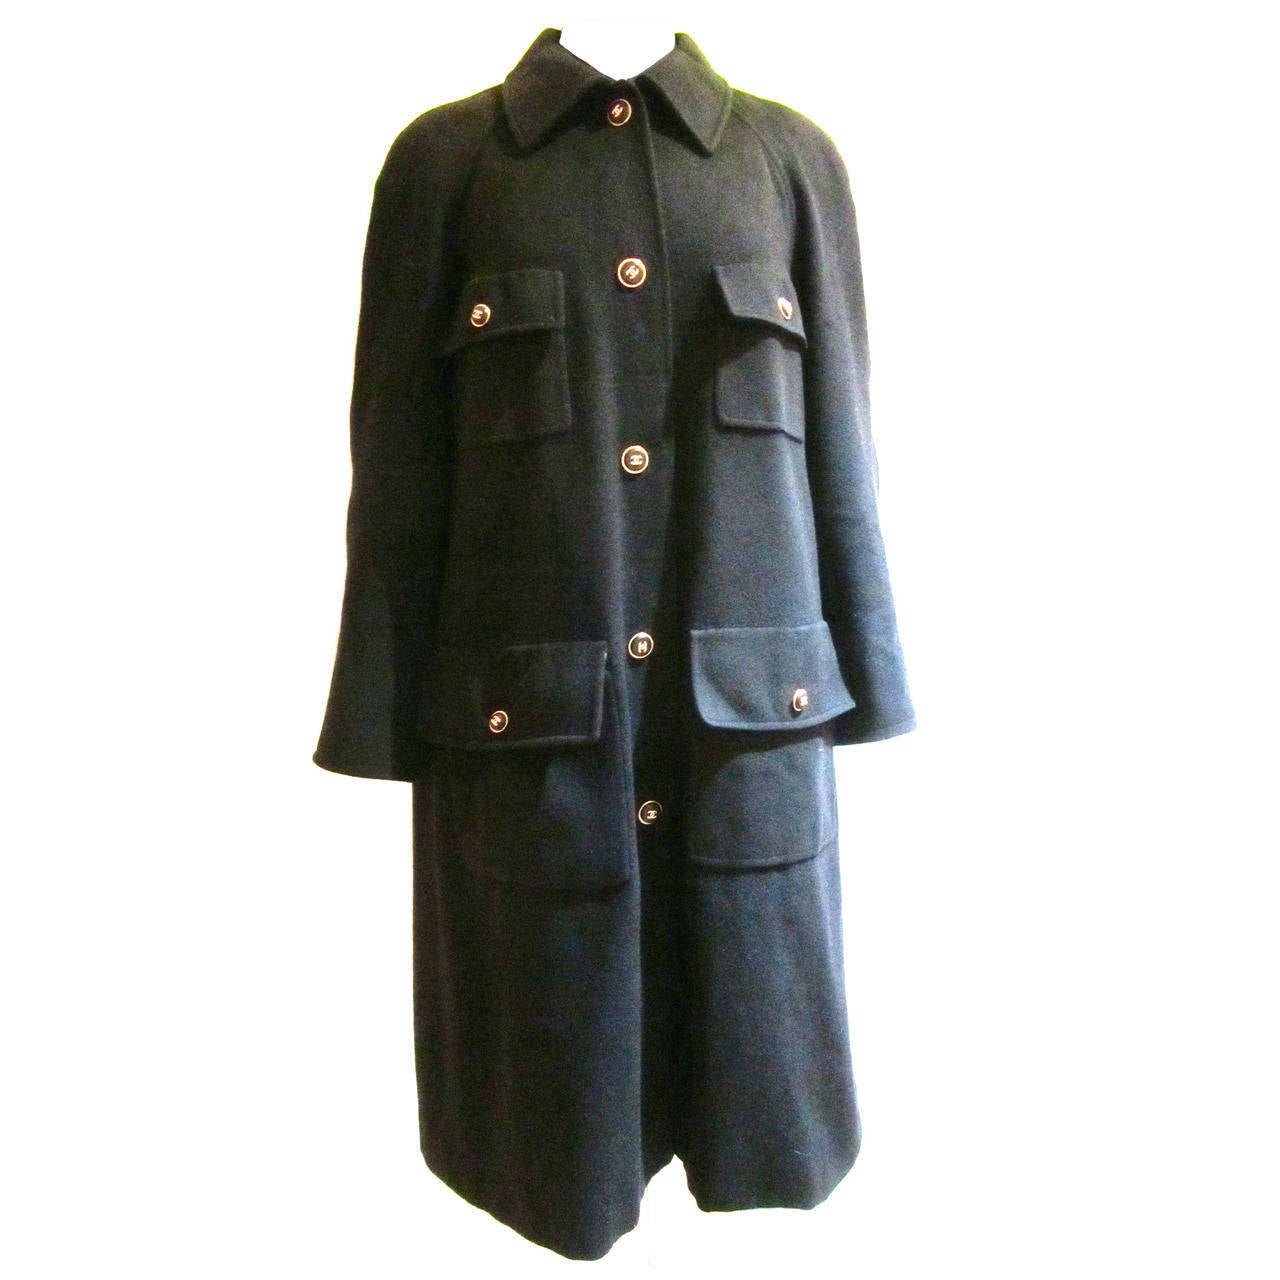 Black Cashmere Chanel Coat with Logo Buttons